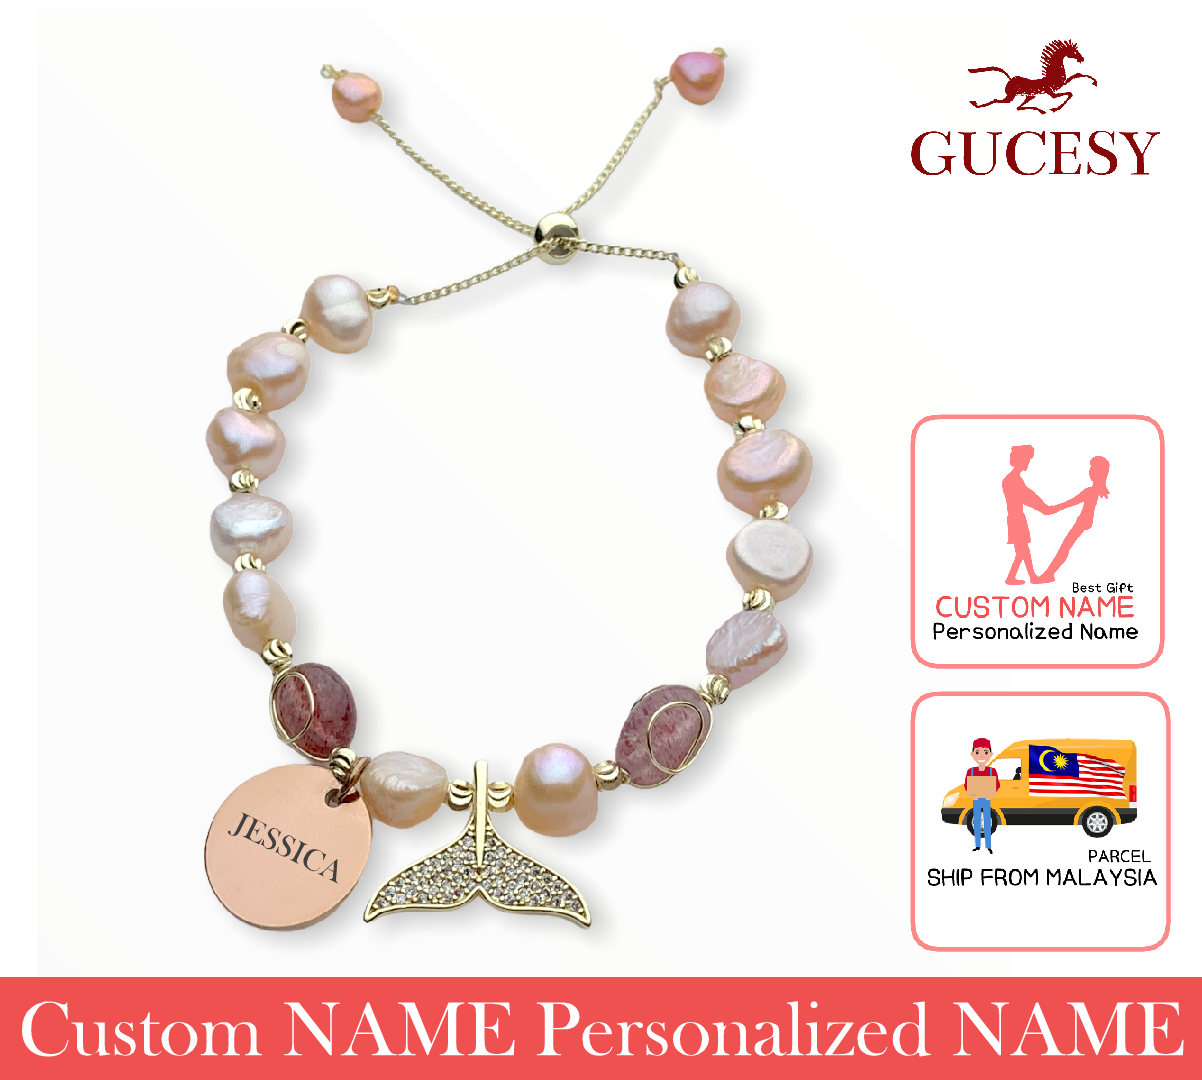 GUCESY Personalized Name Pearl Emerald Lucky Fishtail Bracelet Hadiah GIFT GIVING READY Custom Name